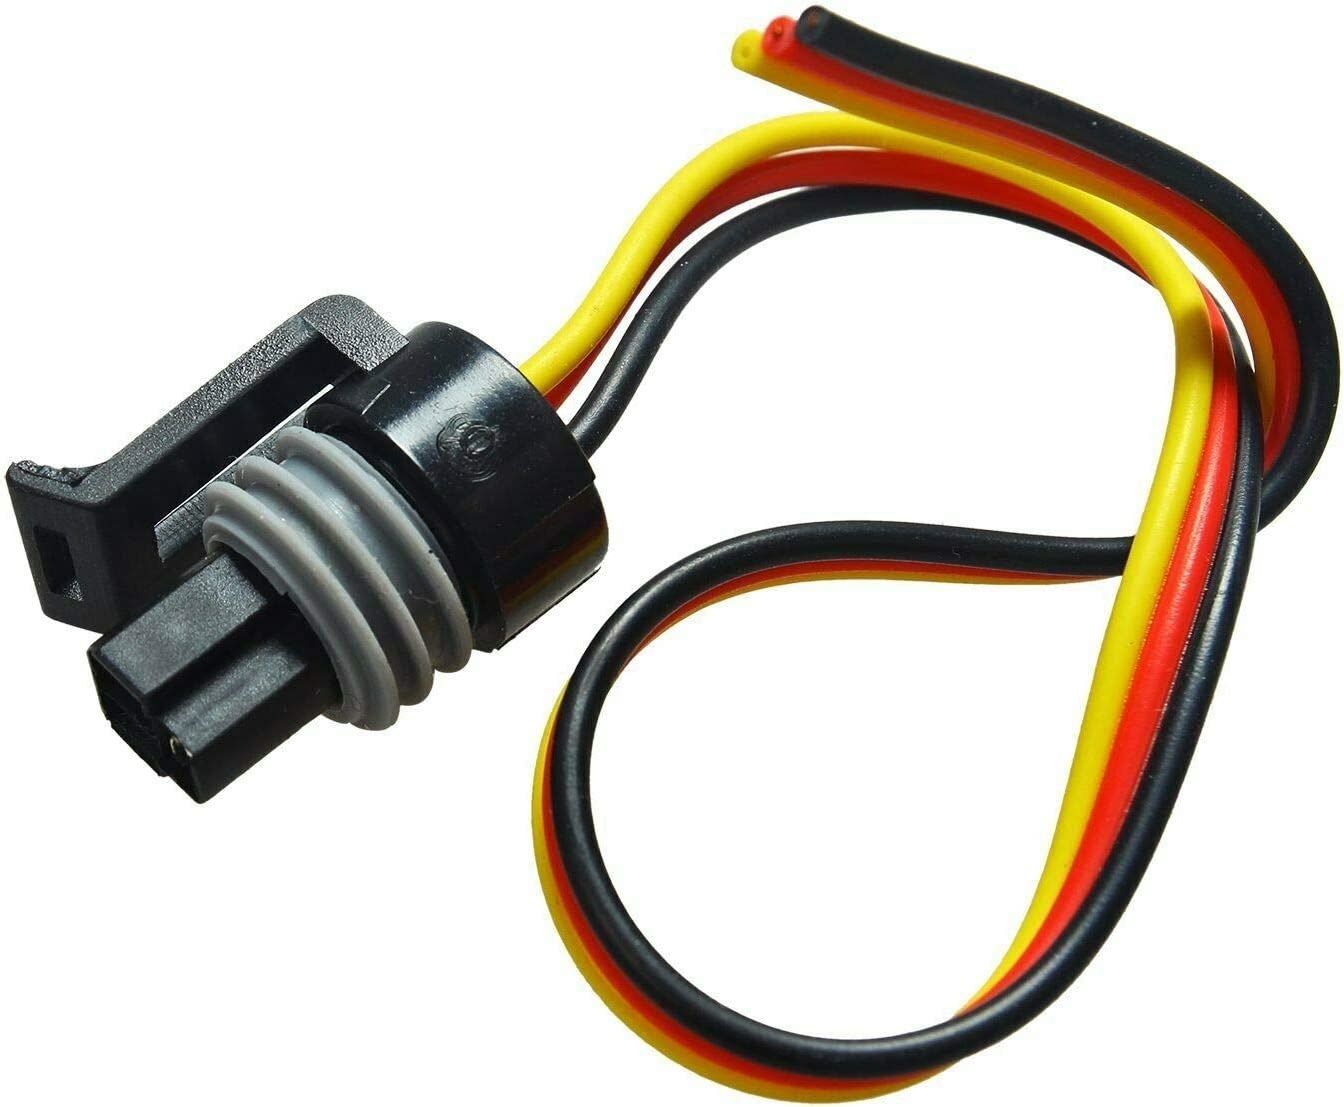 5C3Z-12224-A Sensor New Compatible with Ford Serie E F Ecolnine V8 7.3L SUPERFASTRACING Pigtail Connectors of IPR /& ICP